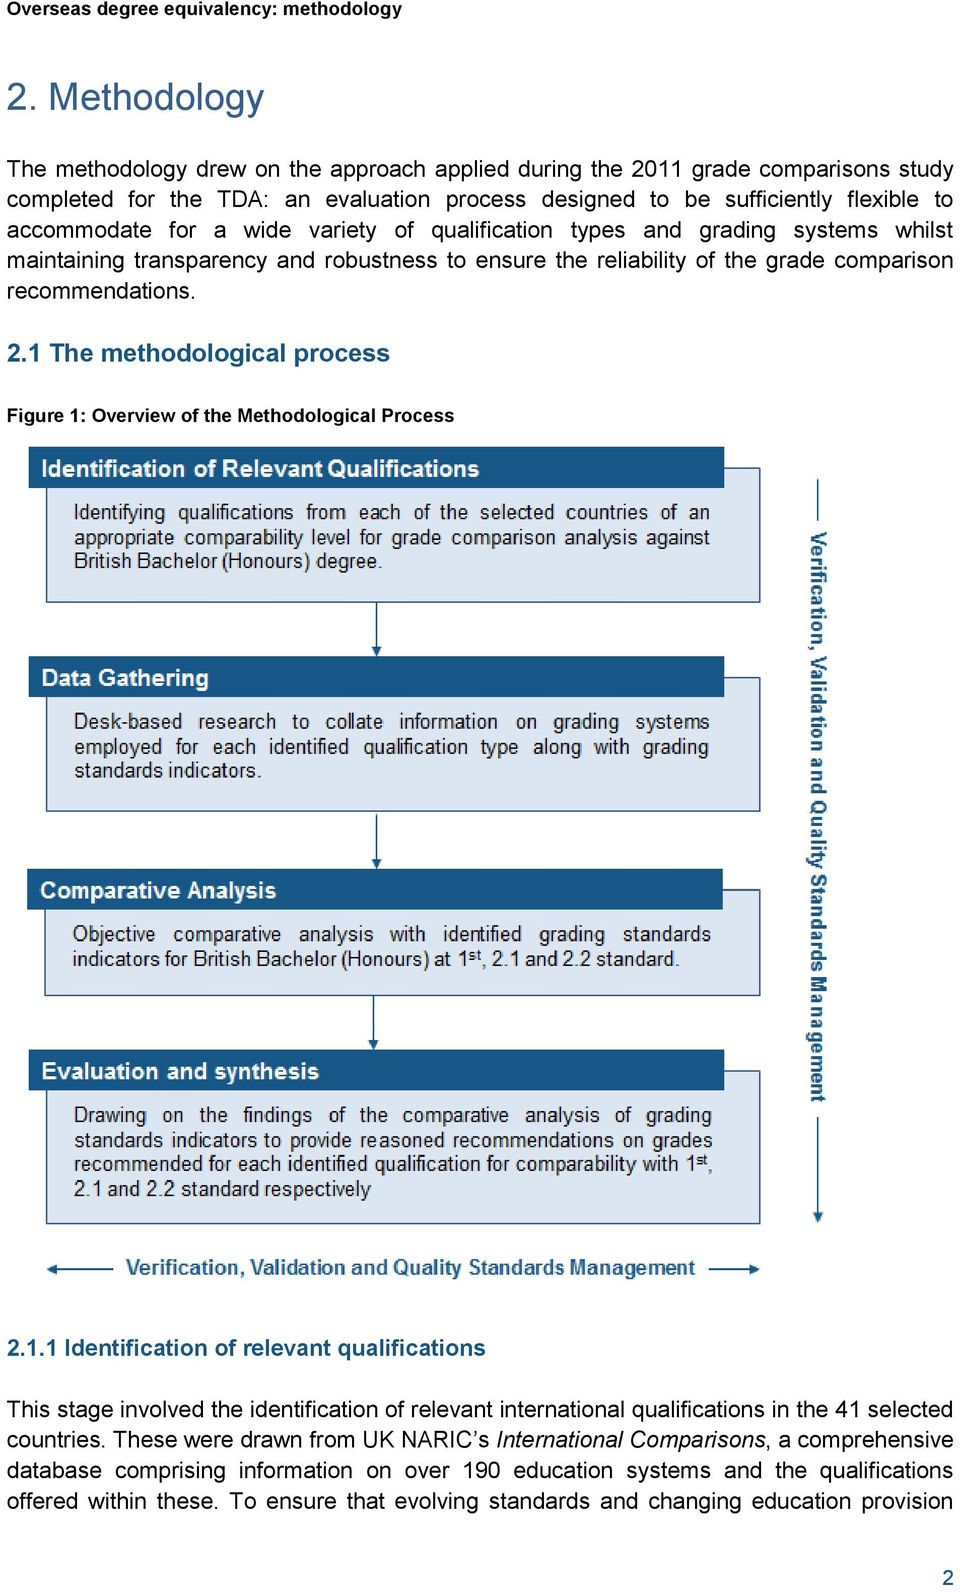 1 The methodological process Figure 1: Overview of the Methodological Process 2.1.1 Identification of relevant qualifications This stage involved the identification of relevant international qualifications in the 41 selected countries.